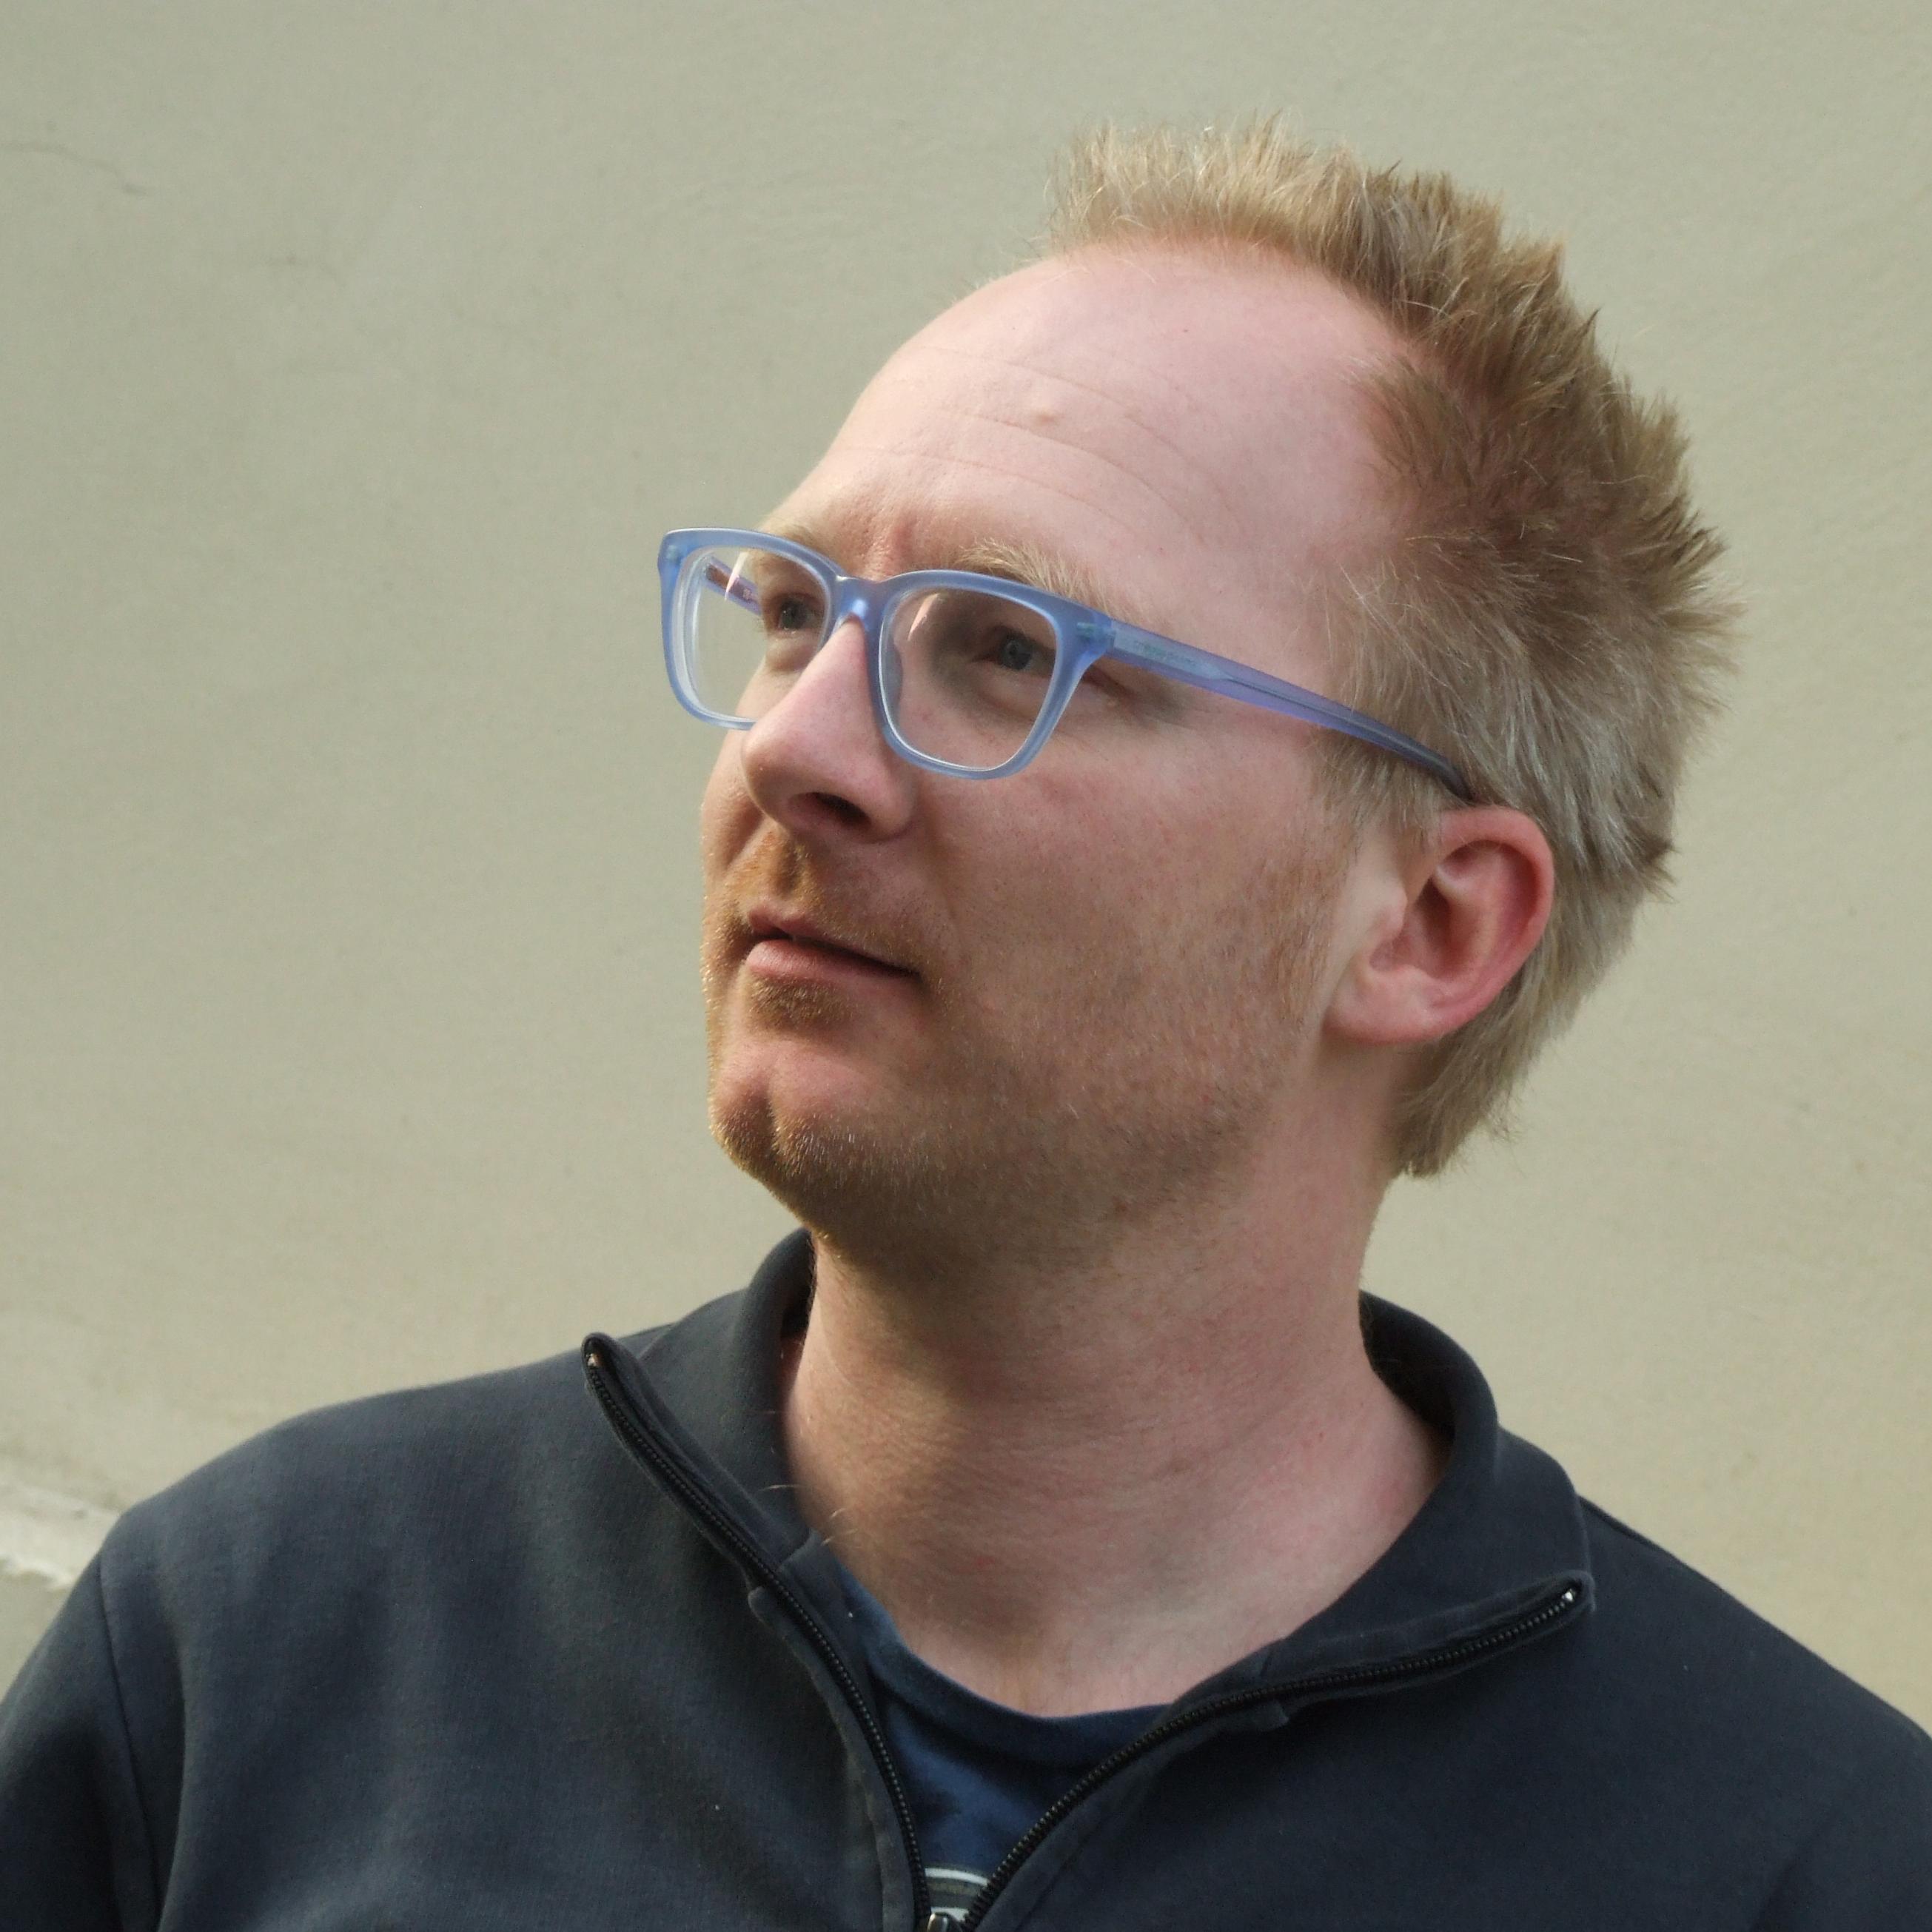 Wouter Vanderstede, Researcher and staff member, Childhood & Society Research Centre - Kind & Samenleving vzw, Belgium